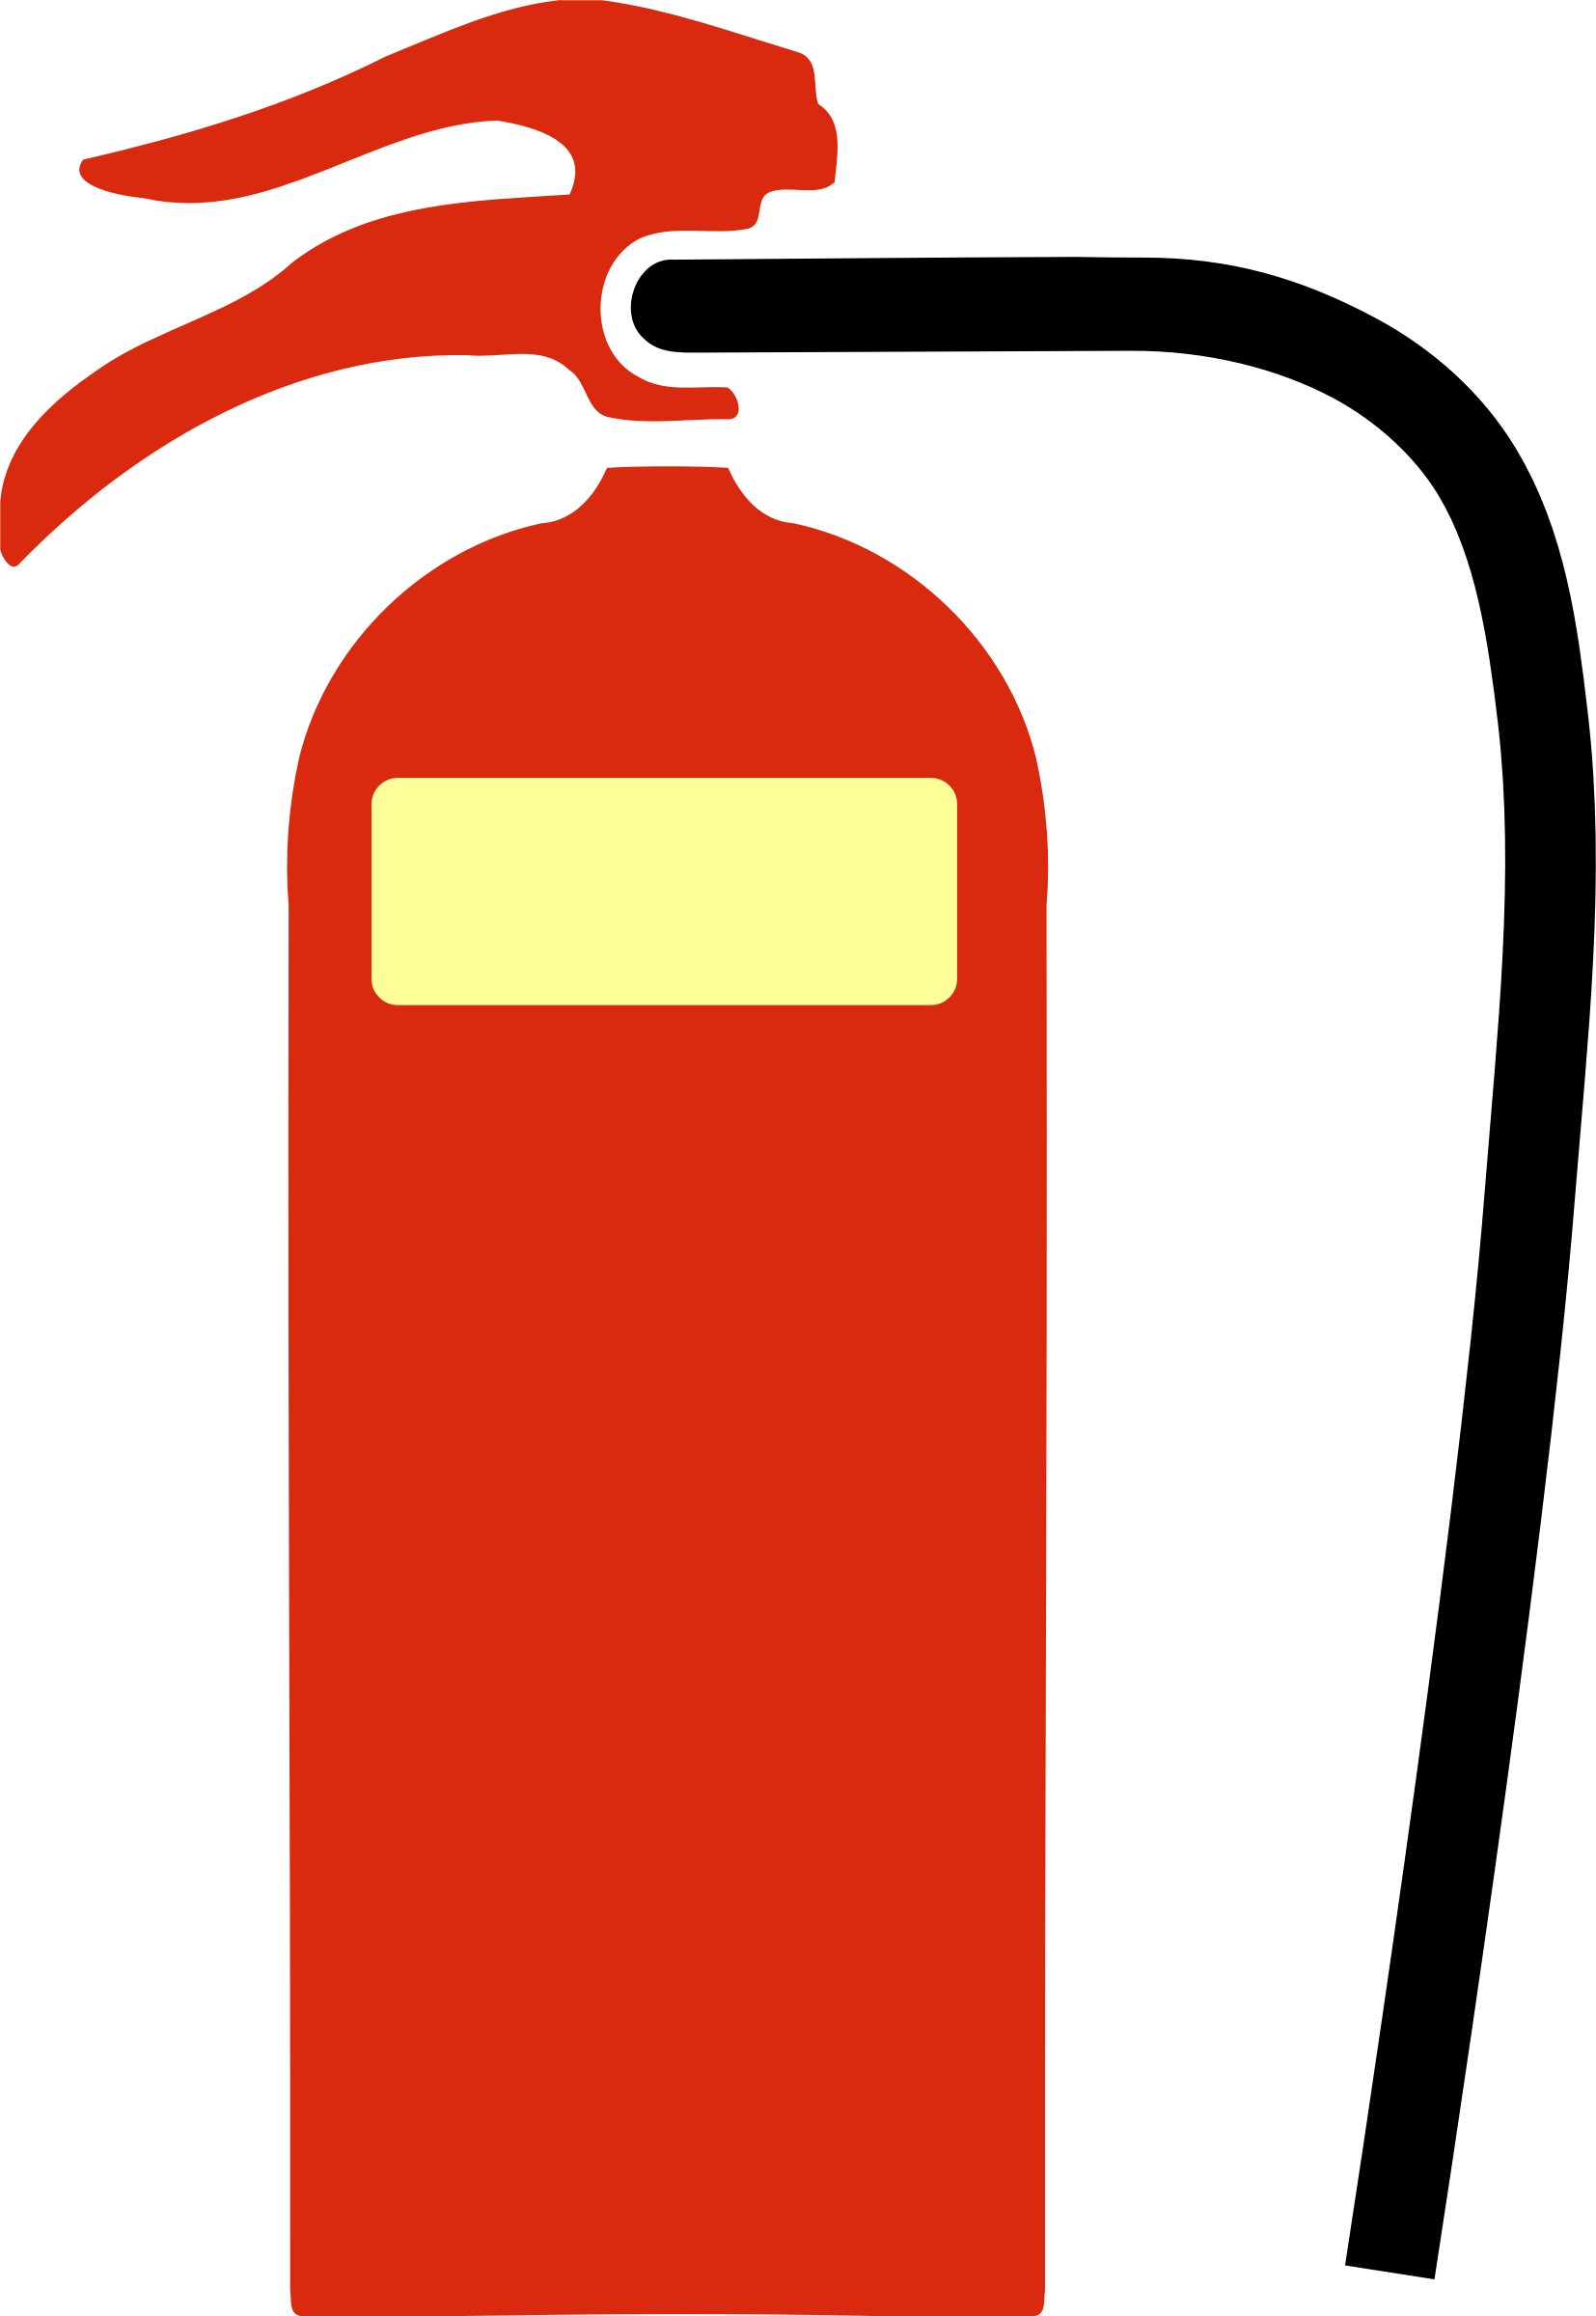 Extinguisher clipart chlorofluorocarbon. Fire foam big image